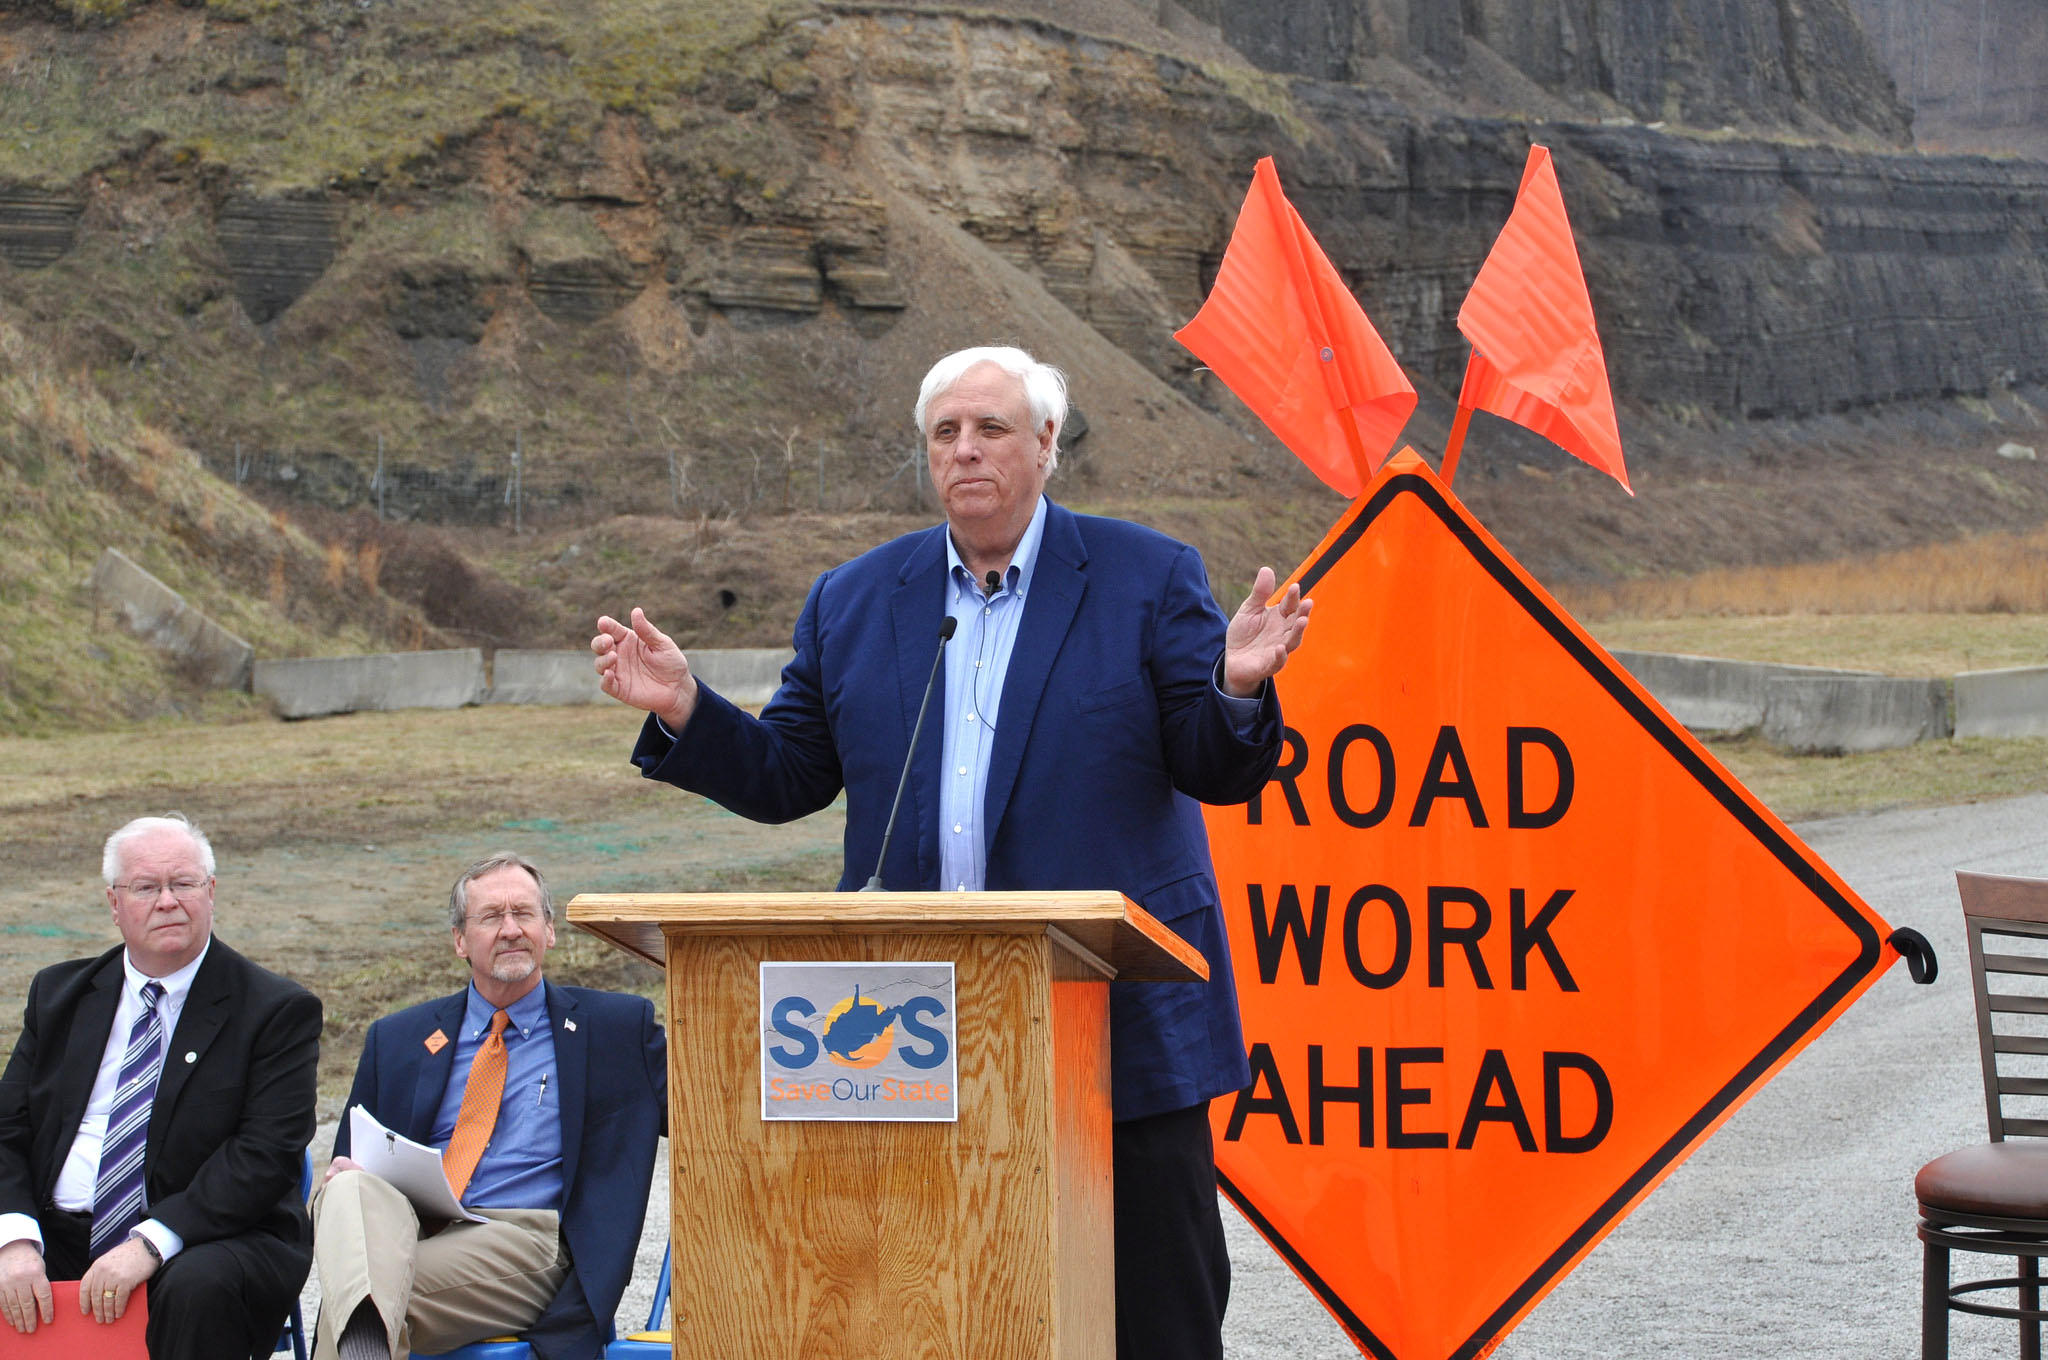 Ballot count begins for $1.6 billion roads bond